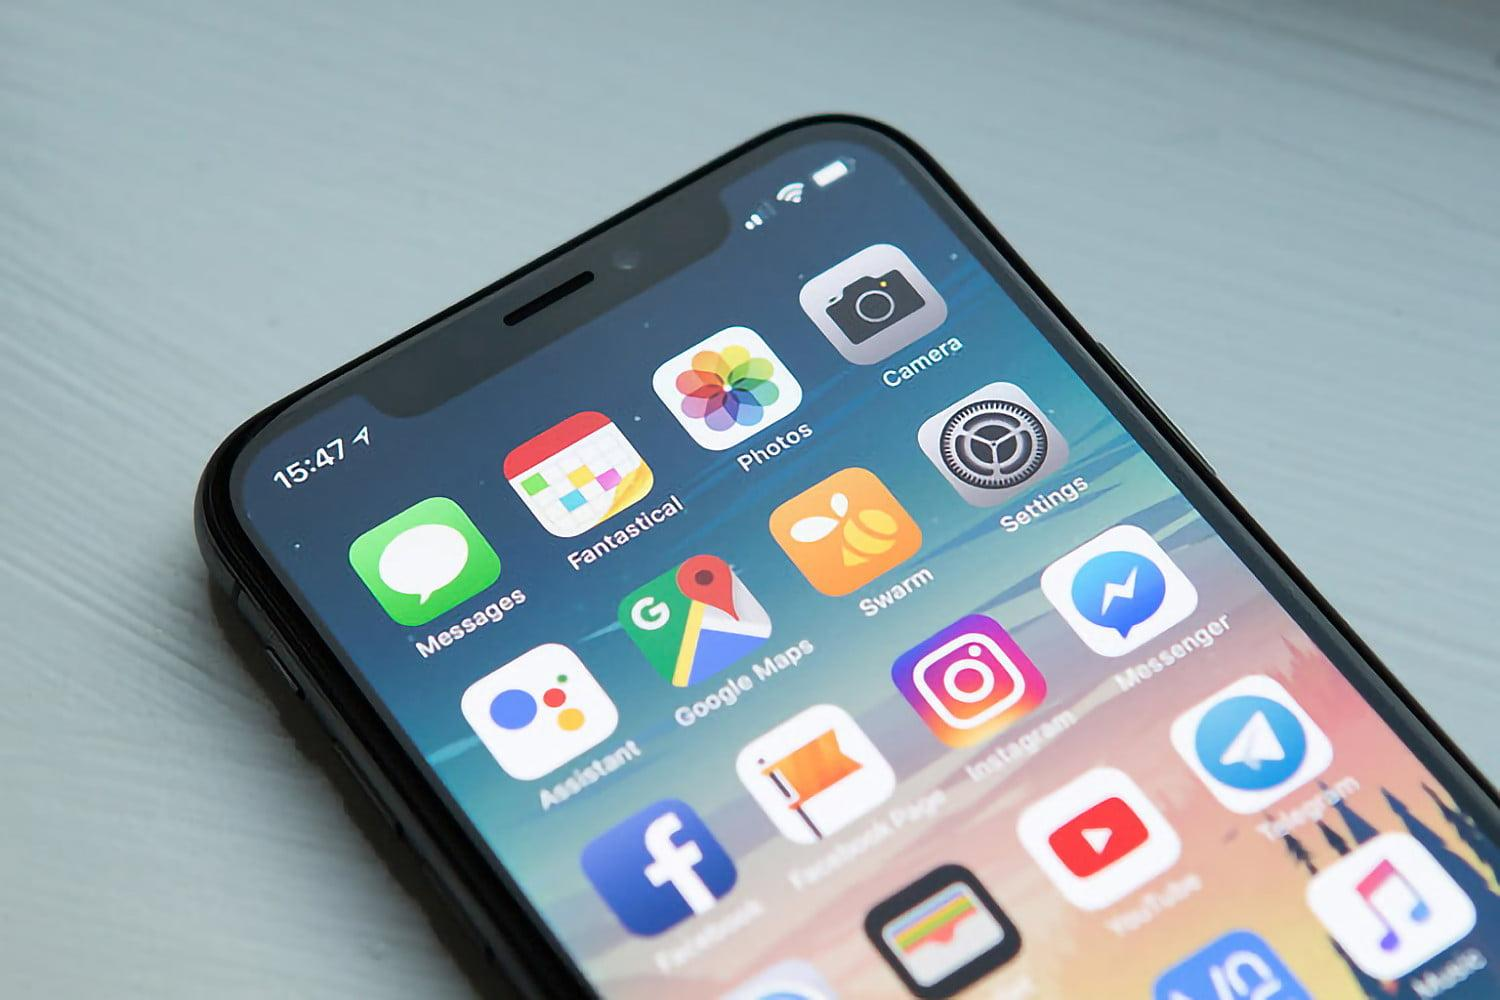 Apple will pay you $1 million to find a very specific iPhone bug